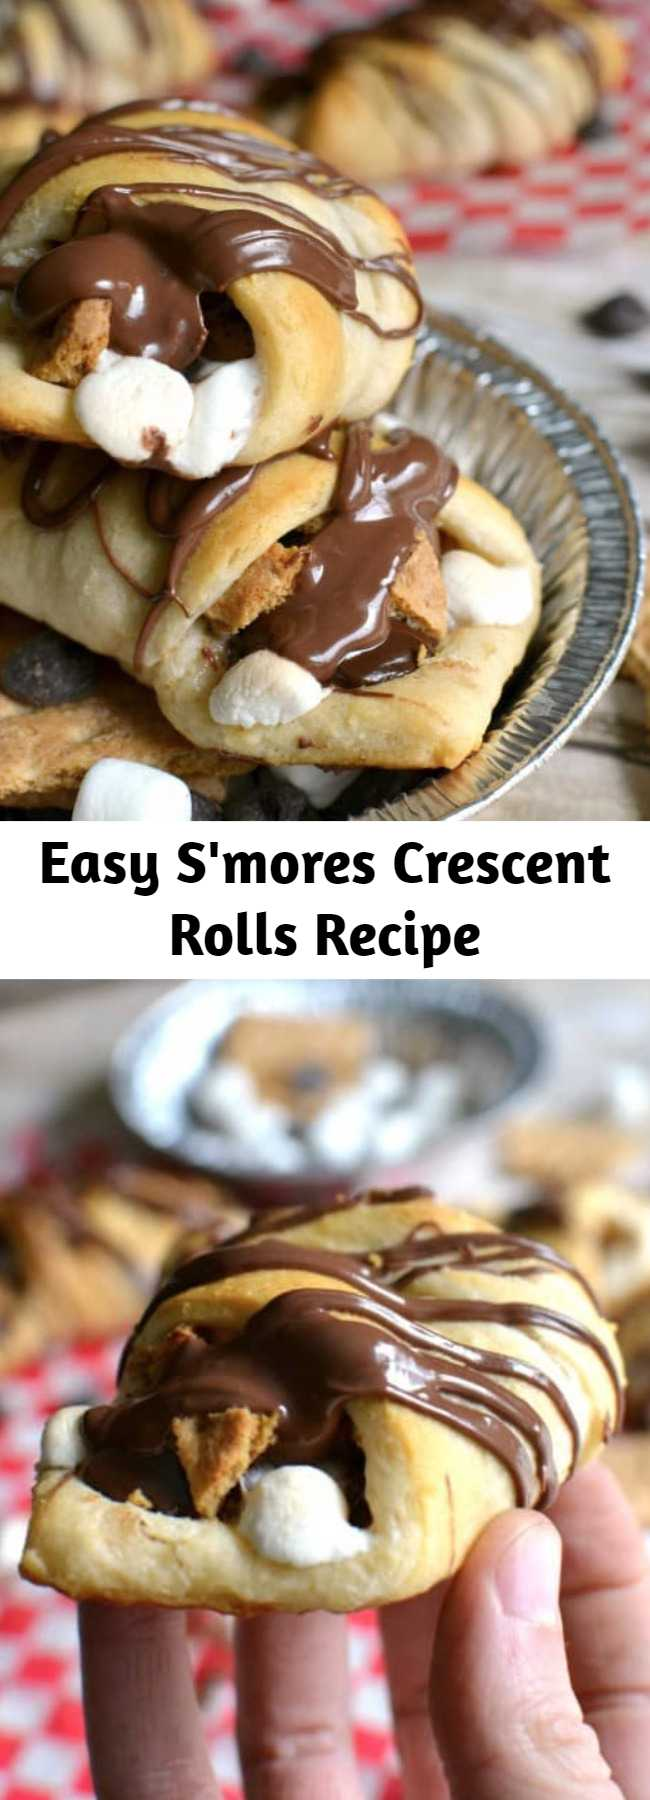 Easy S'mores Crescent Rolls Recipe - S'mores Crescent Rolls stuffed with chocolate chips, marshmallows, graham crackers and Nutella and topped with Nutella drizzle. Our favorite new way to enjoy s'mores!